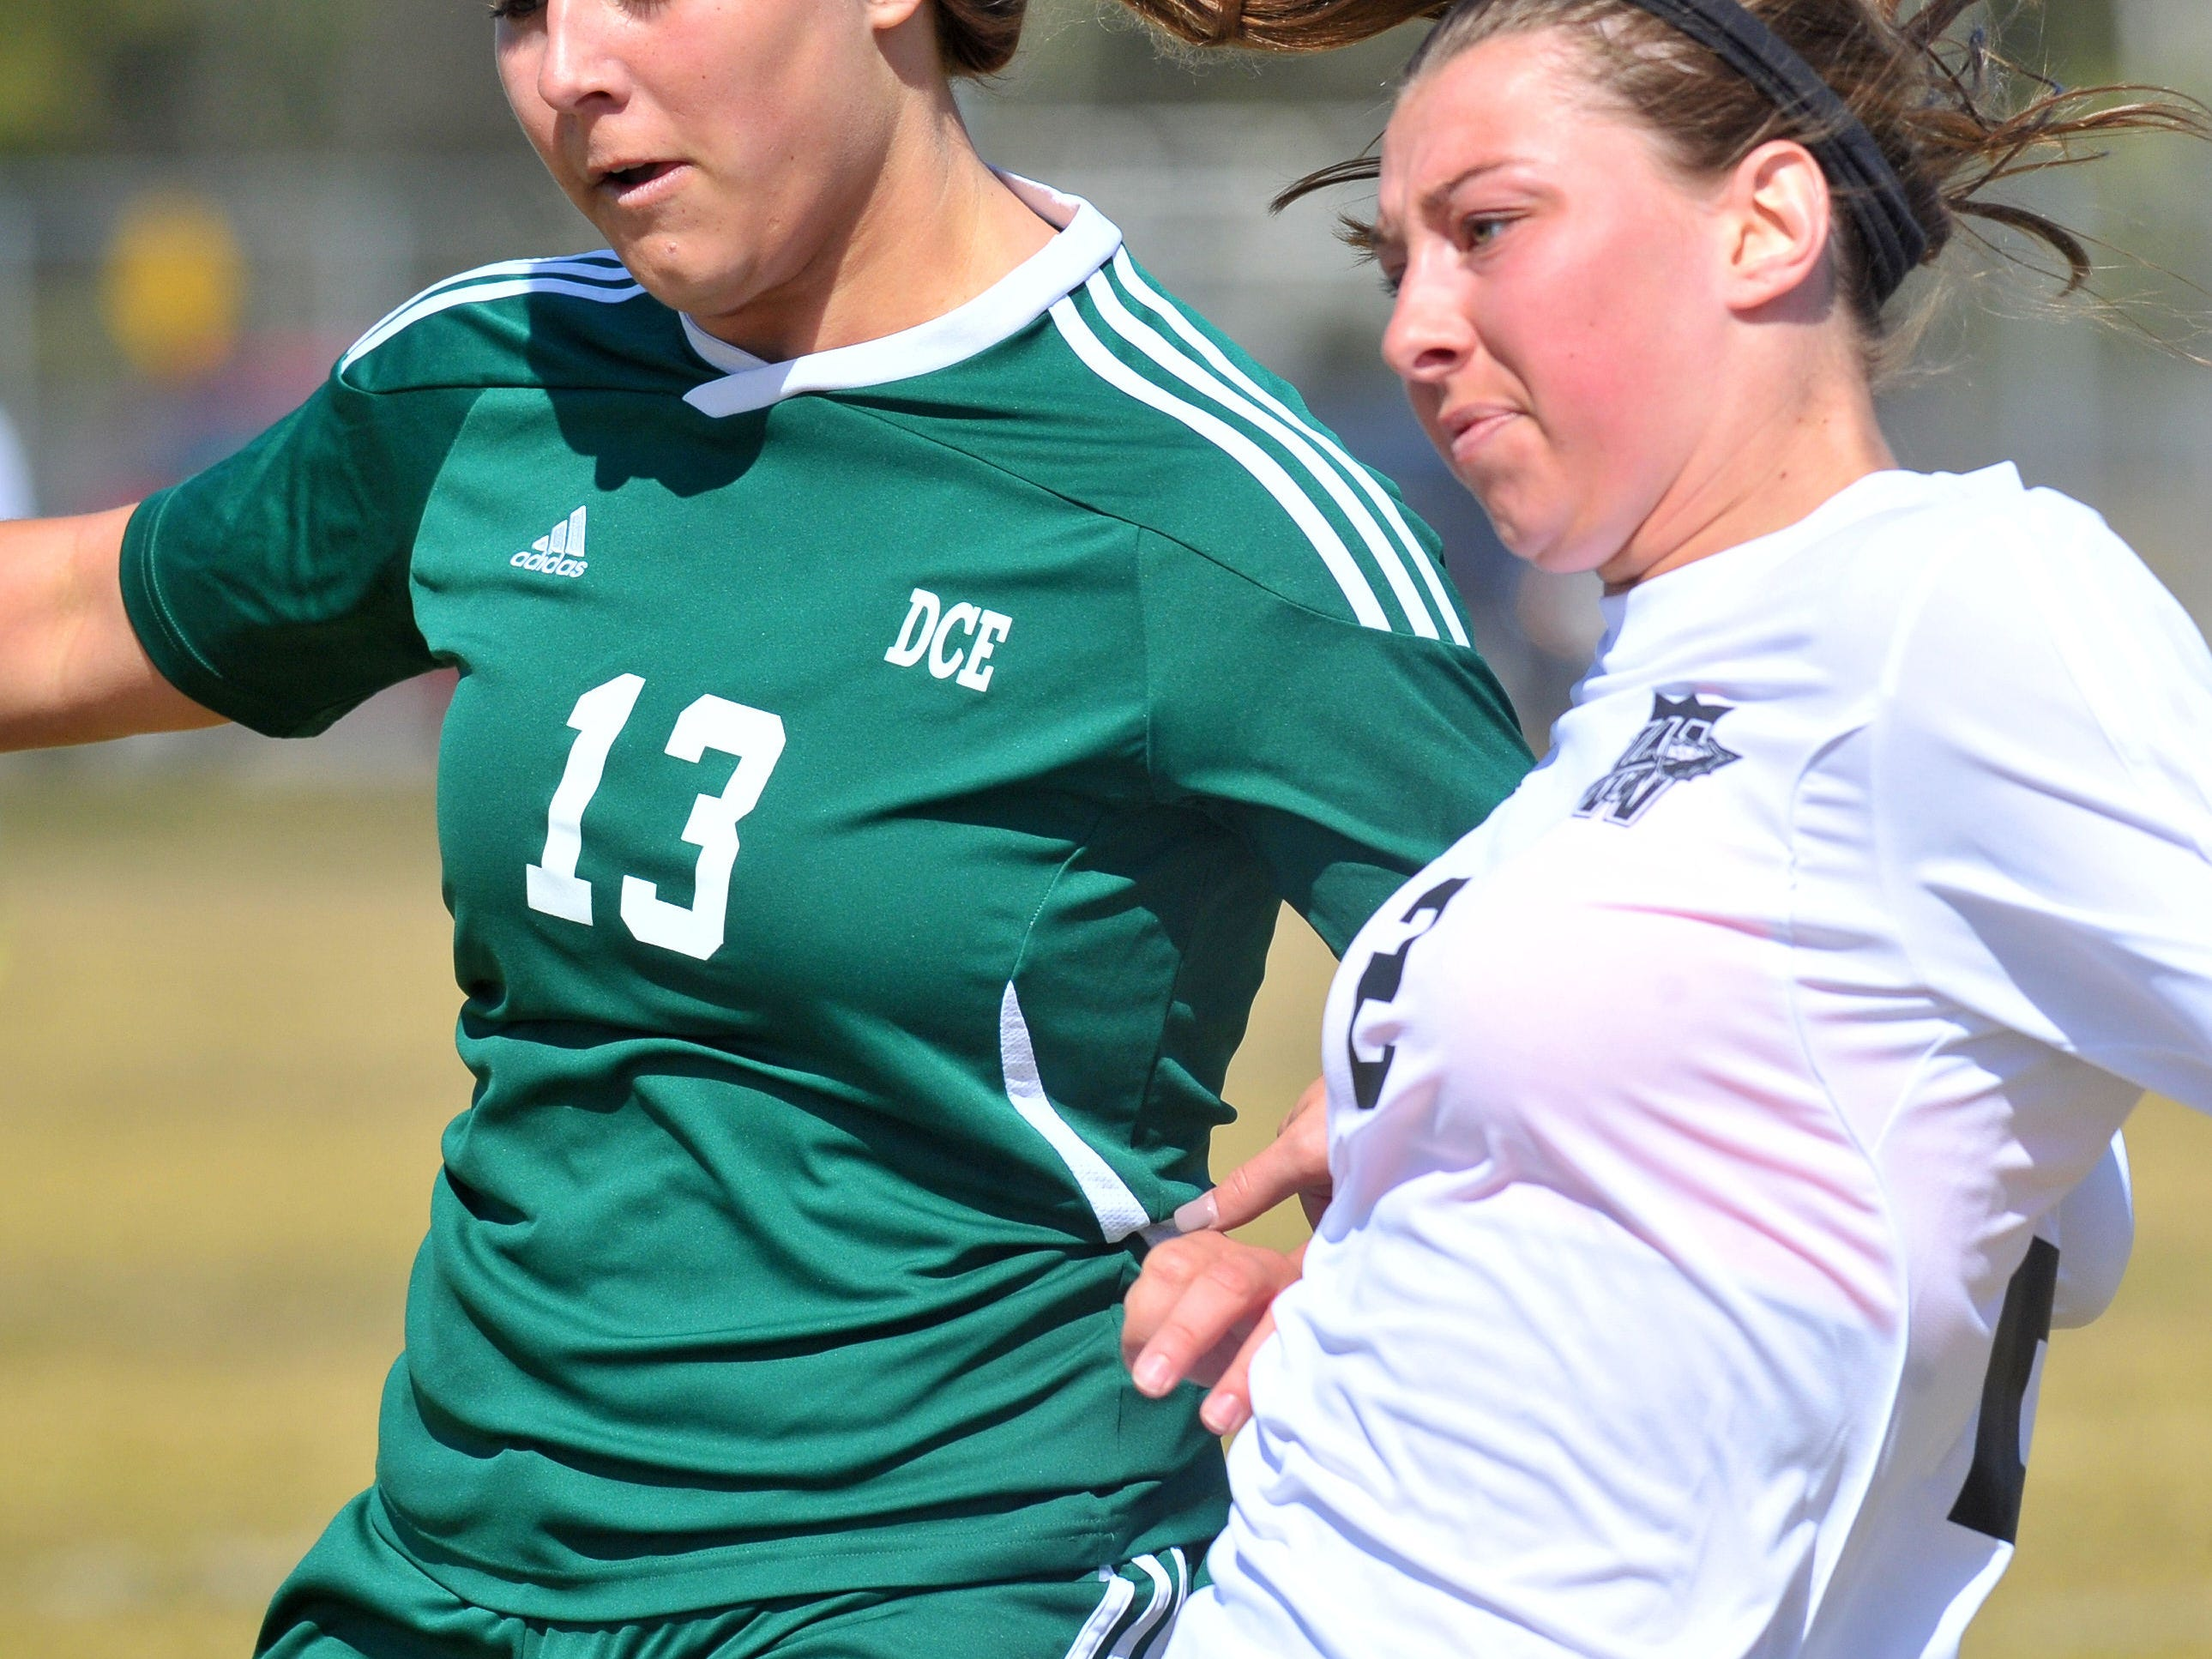 Everest's Krista Koenig, left, and Waunakee's Karly Keller battle for the ball during the first half Saturday.